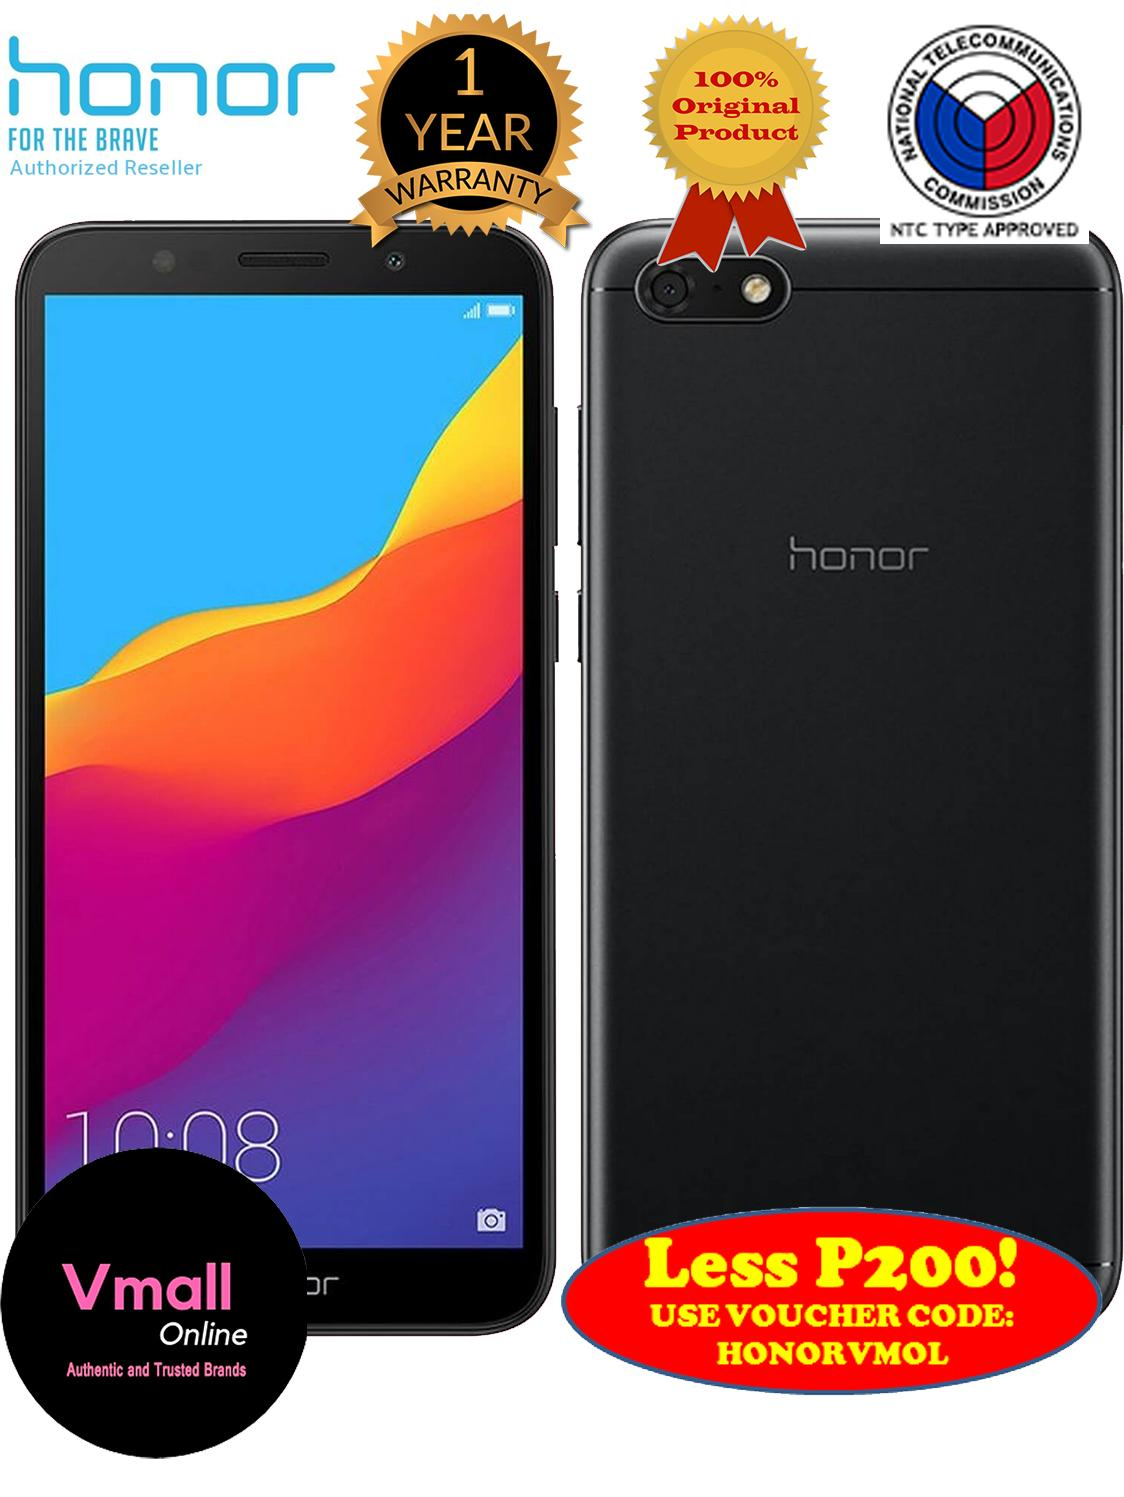 "HUAWEI HONOR 7S 5.45"" Dual SIM, 16 GB  13 MP Camera"